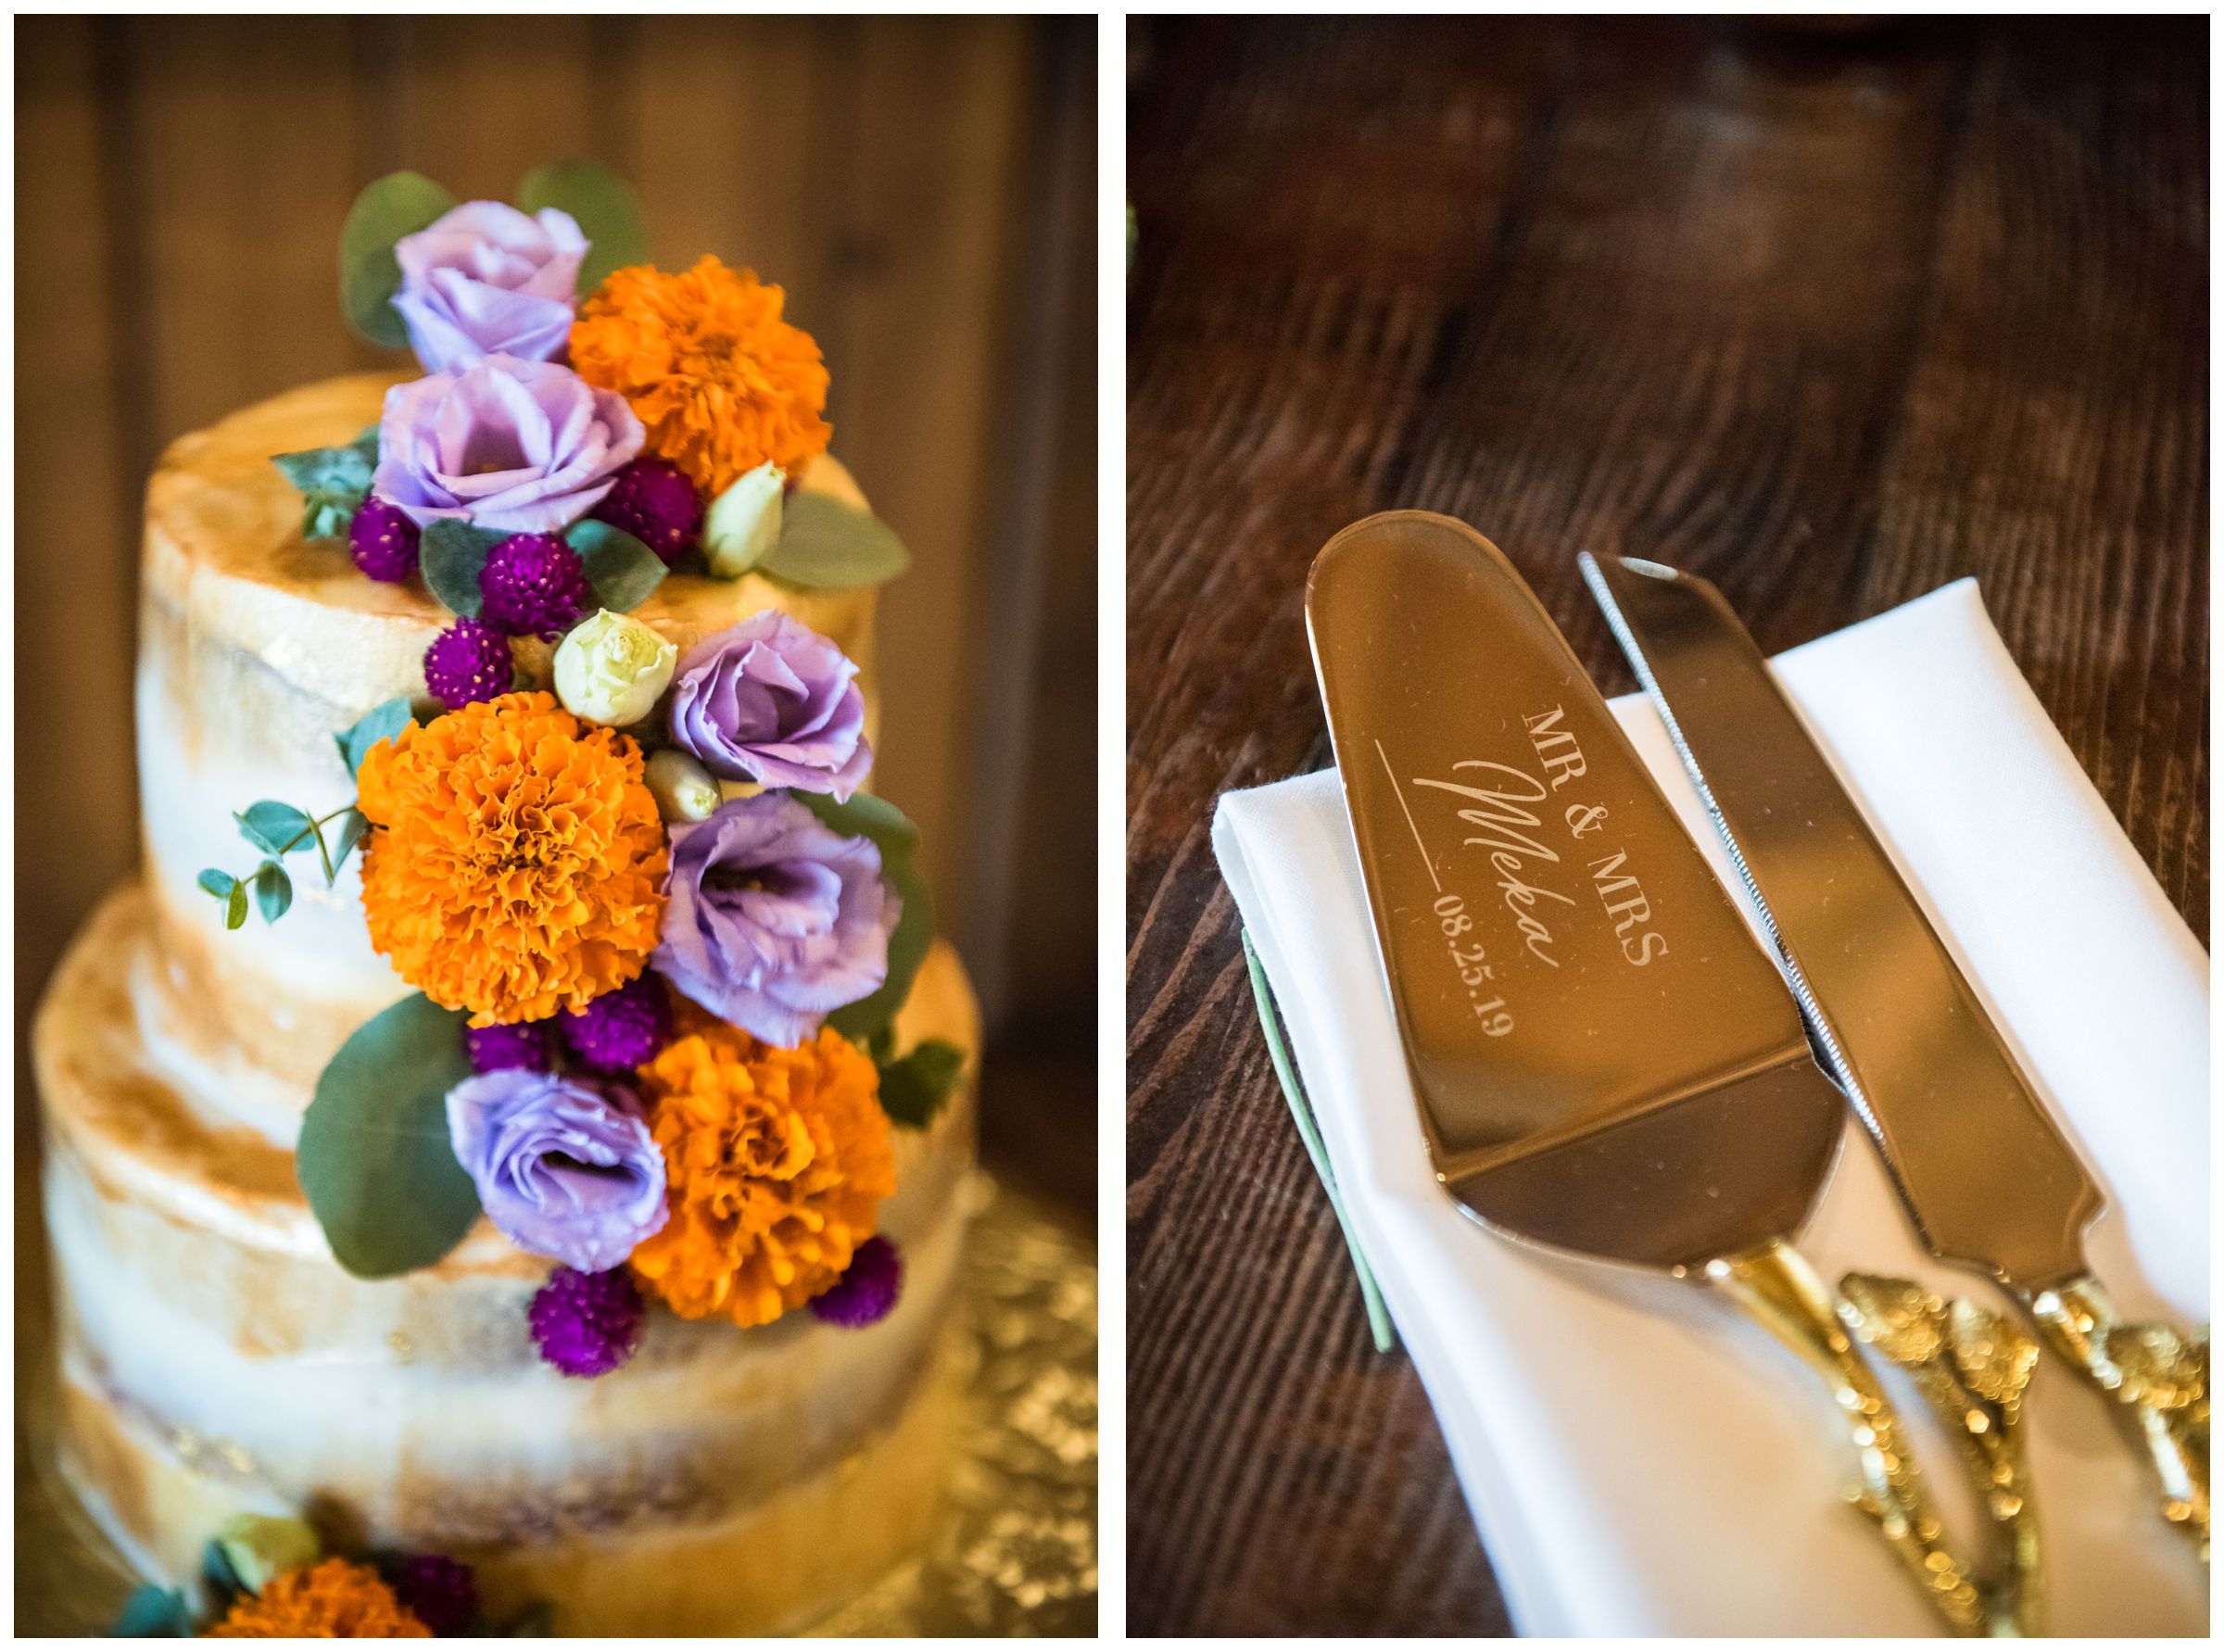 gold engraved wedding cake servers and cake with orange and purple flowers including Indian wedding flower marigolds